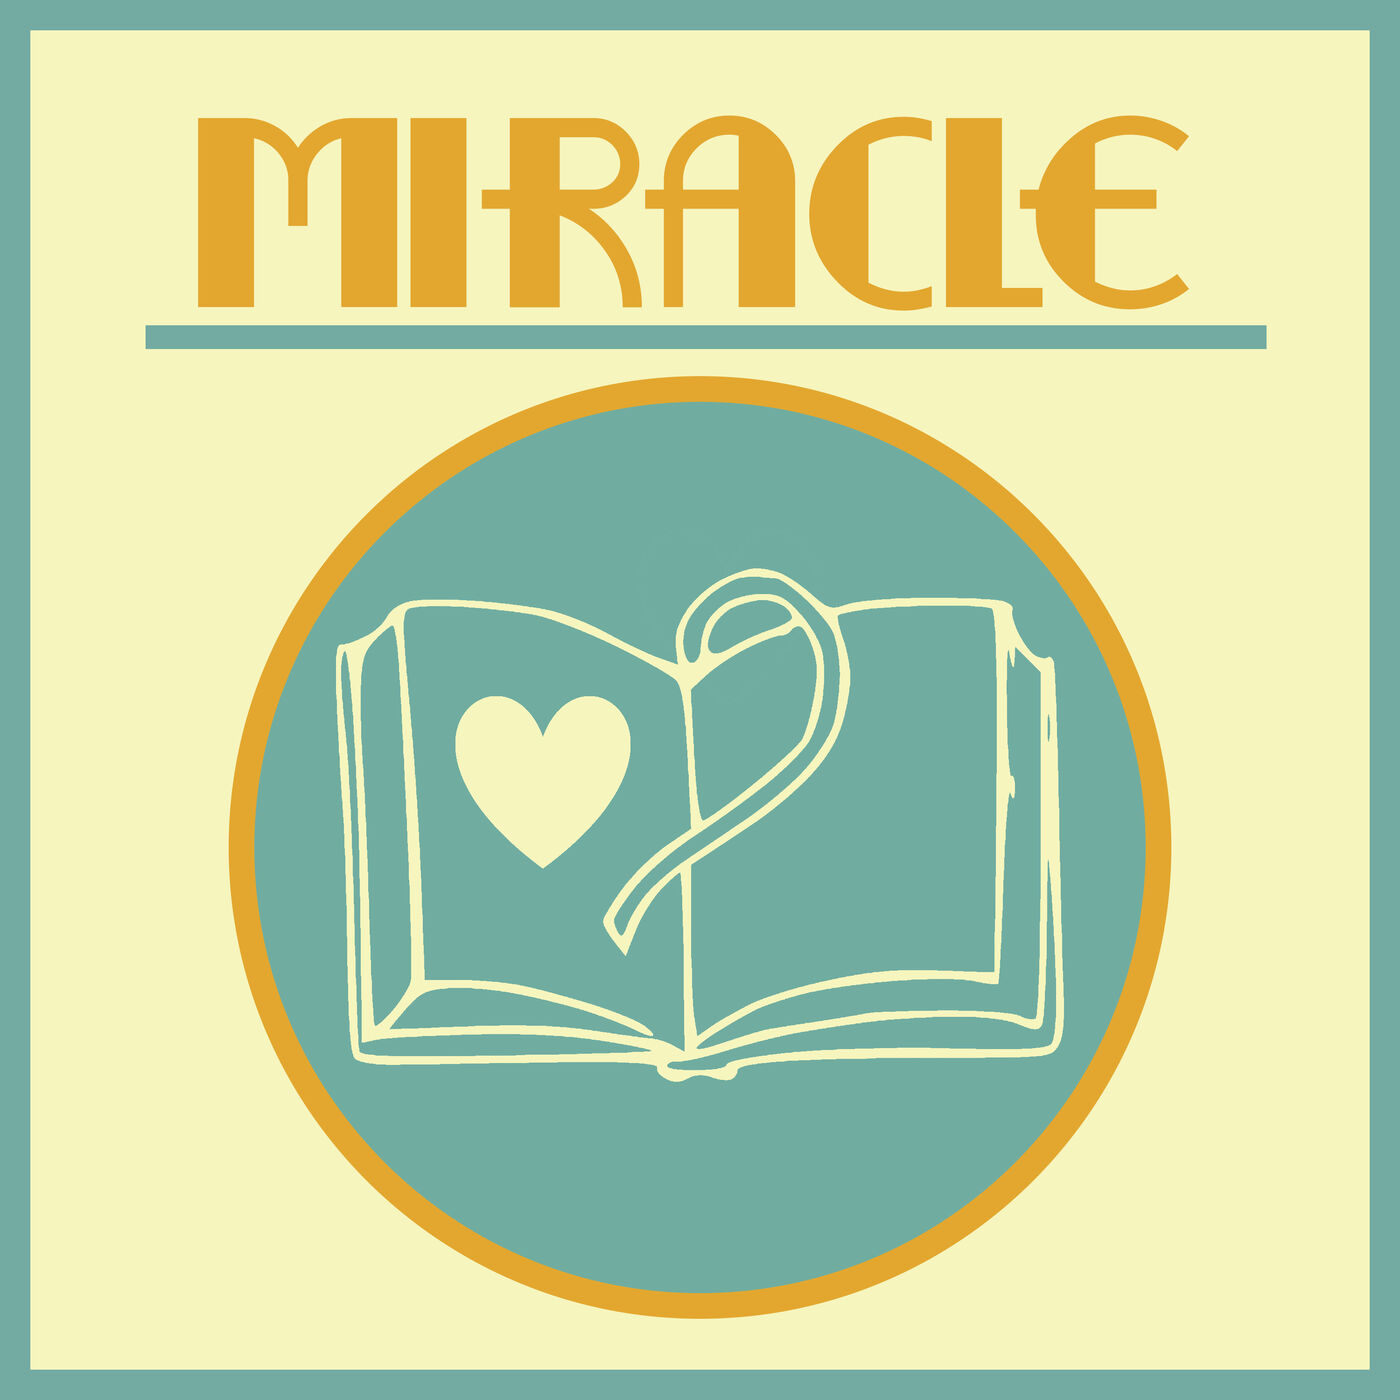 MIRACLE: Feeling inadequate? Doubting your abilities? We Know Just What You Need!